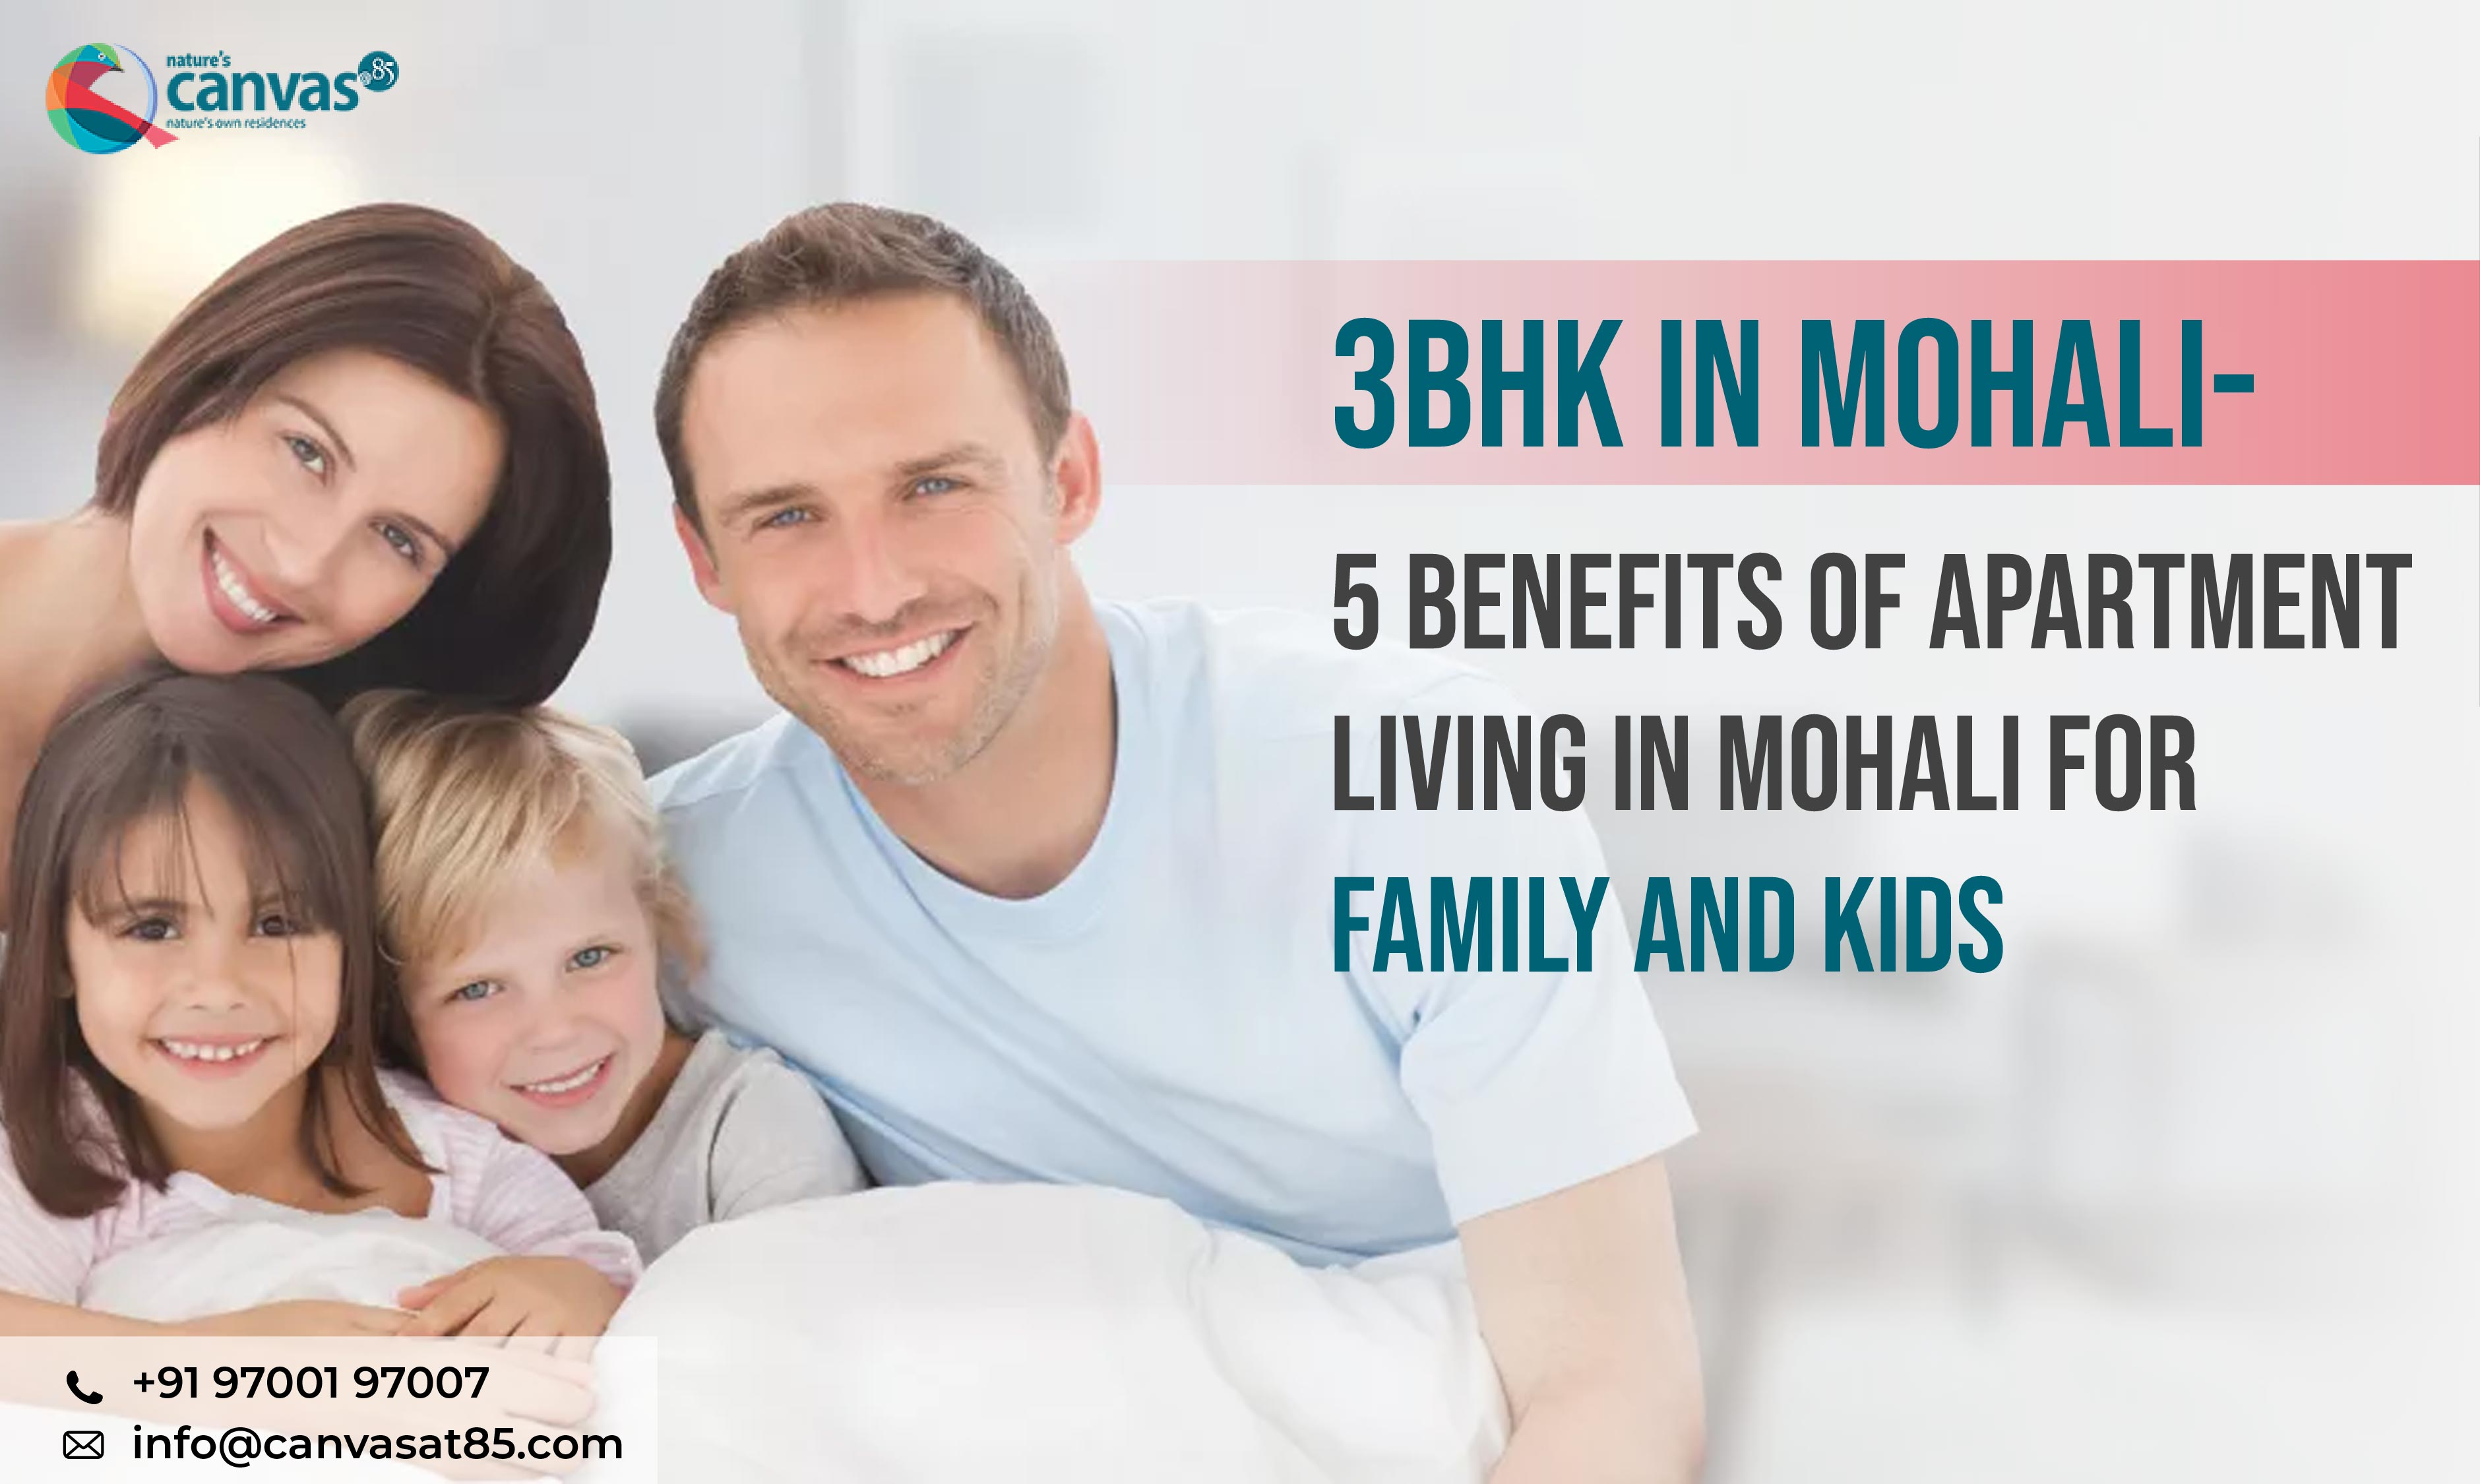 5 Benefits of Apartment Living in Mohali for family and kids